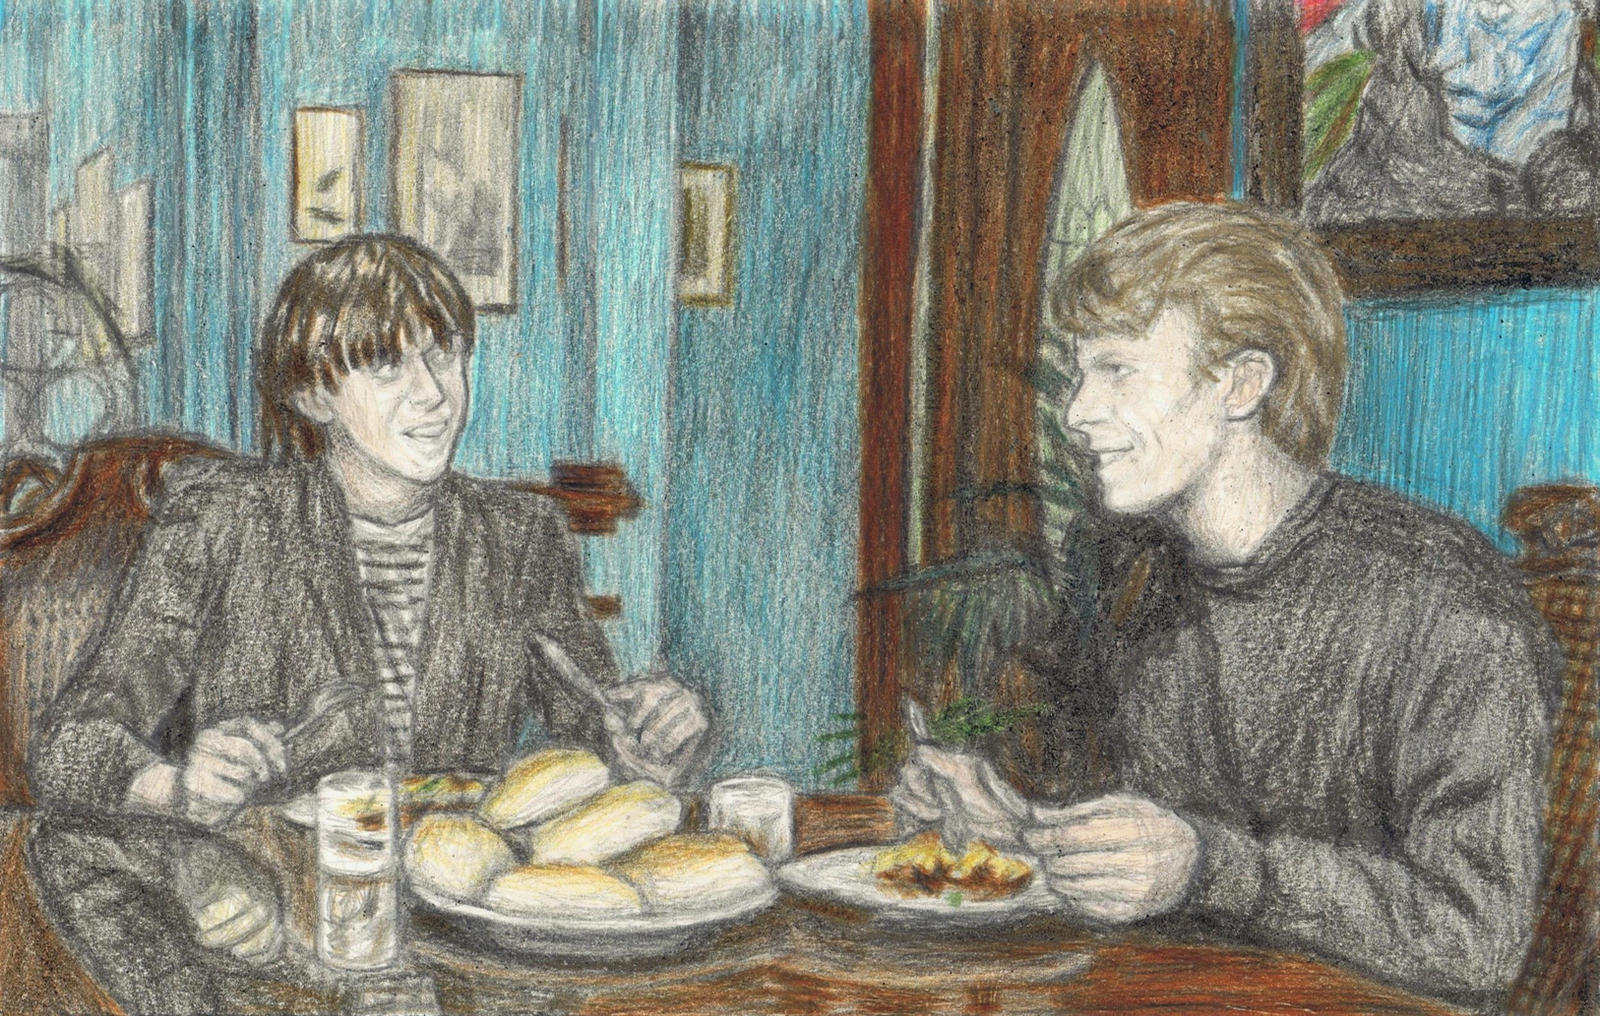 Iggy Pop and David Bowie eating dinner by gagambo